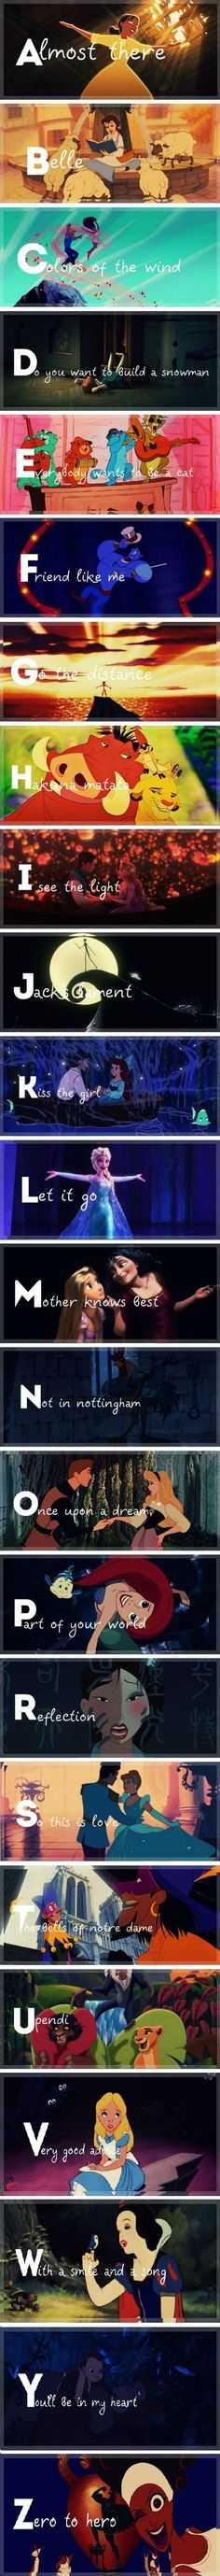 The alphabet, the Disney way. I still need to see some of these.